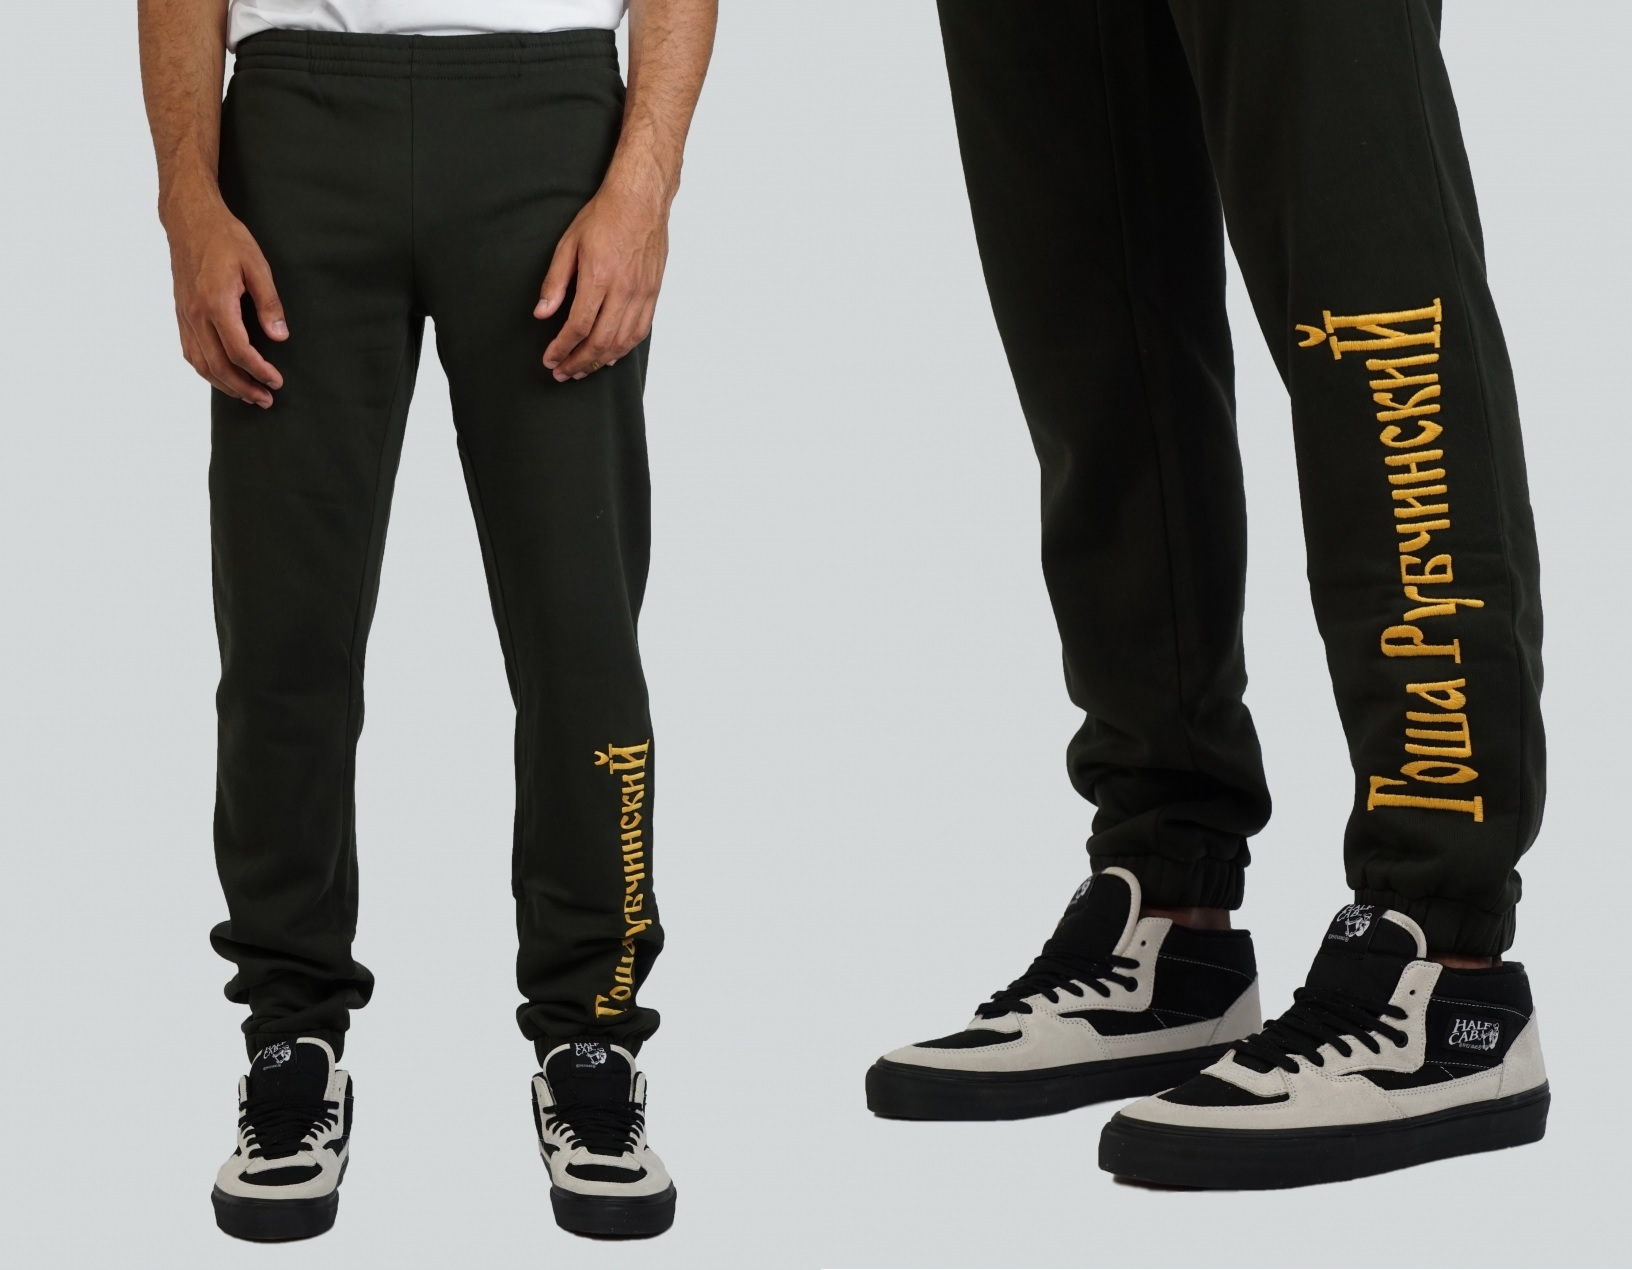 favorite-sneaker-recommend-bottoms-selection